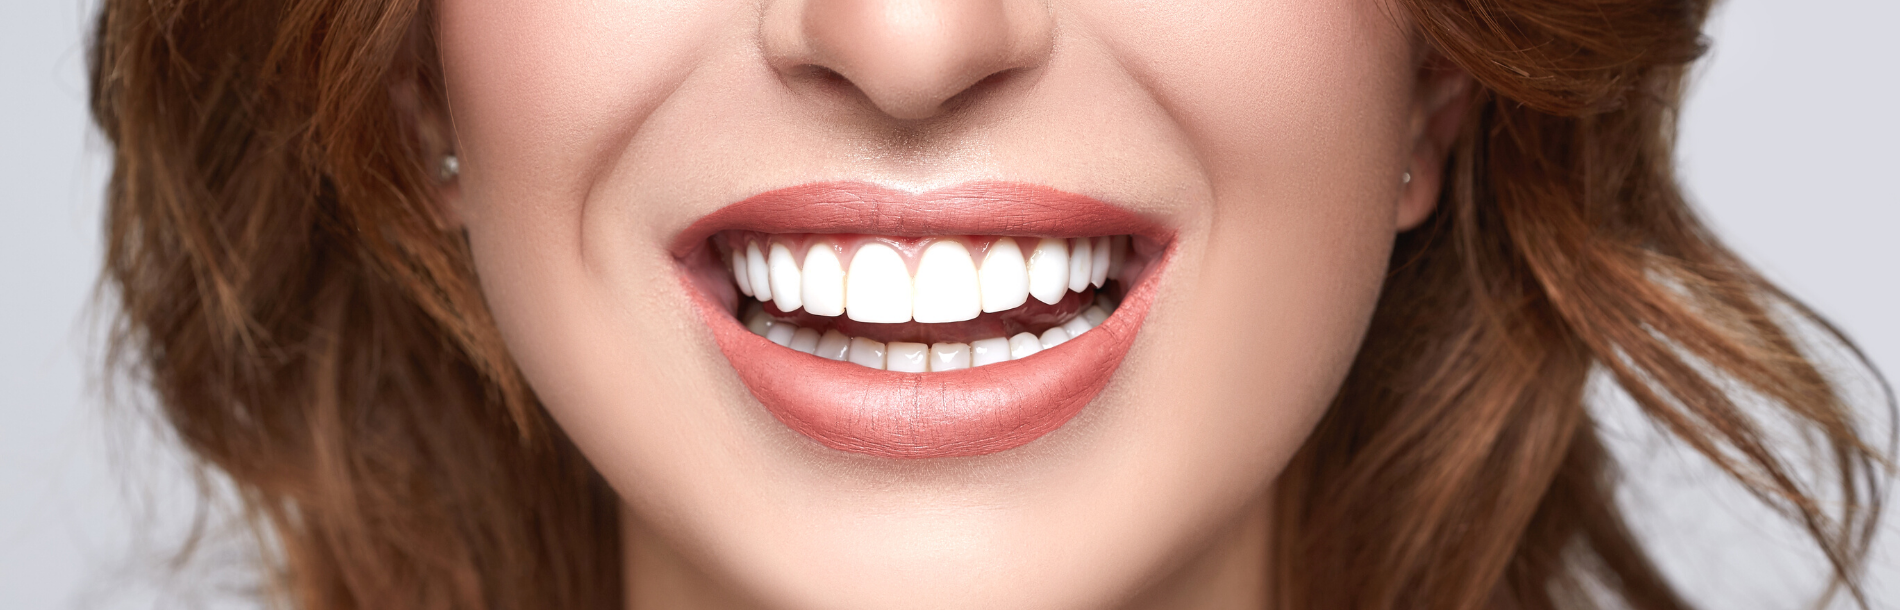 dental implants lake macquarie